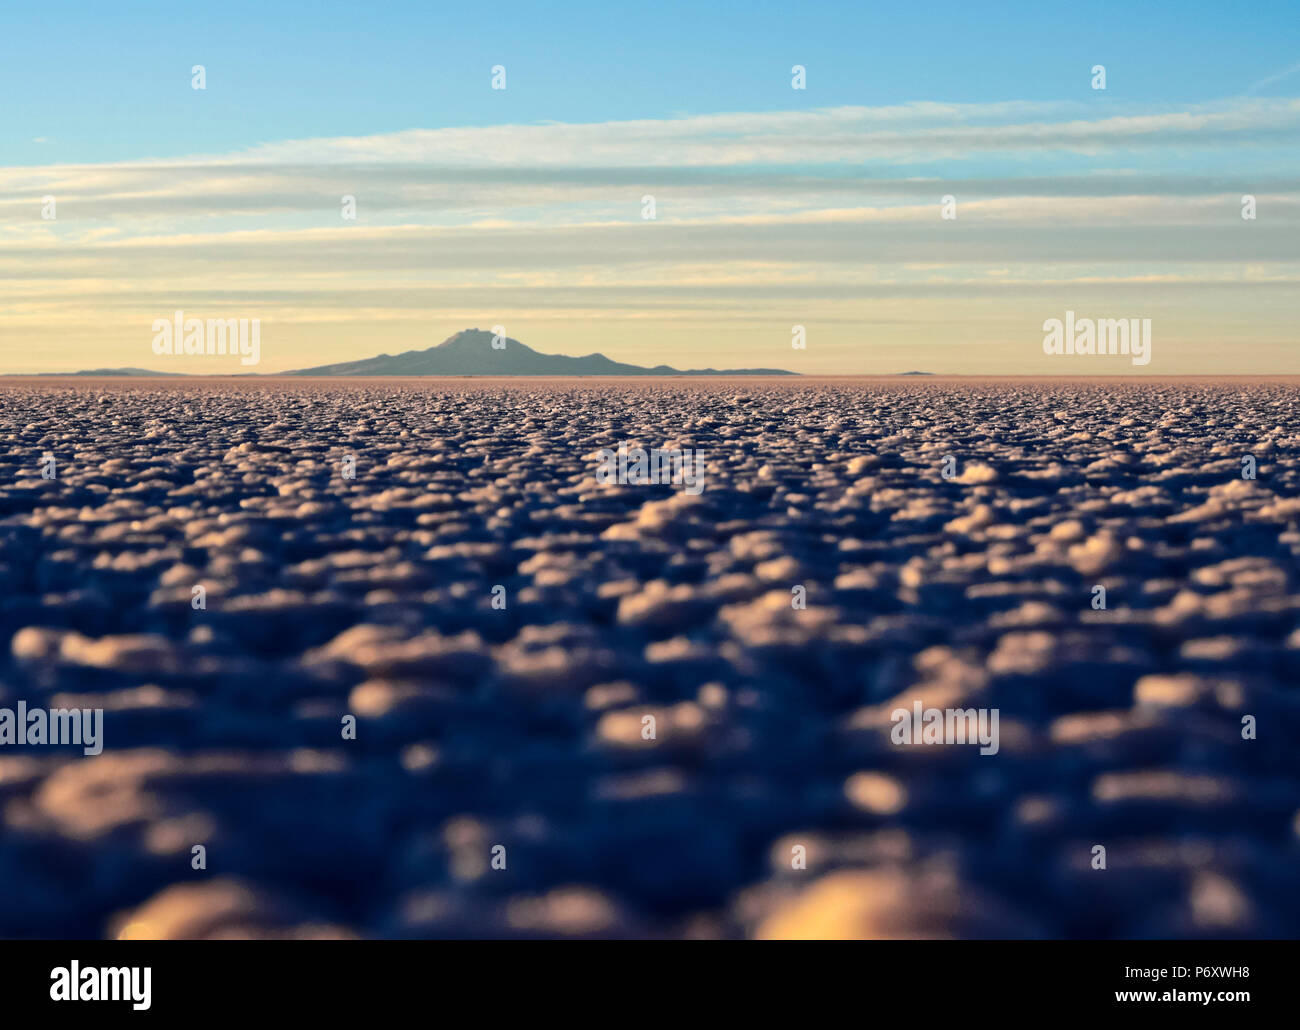 Bolivia, Potosi Department, Daniel Campos Province, View of the Salar de Uyuni, the largest salt flat in the world at sunset. Stock Photo